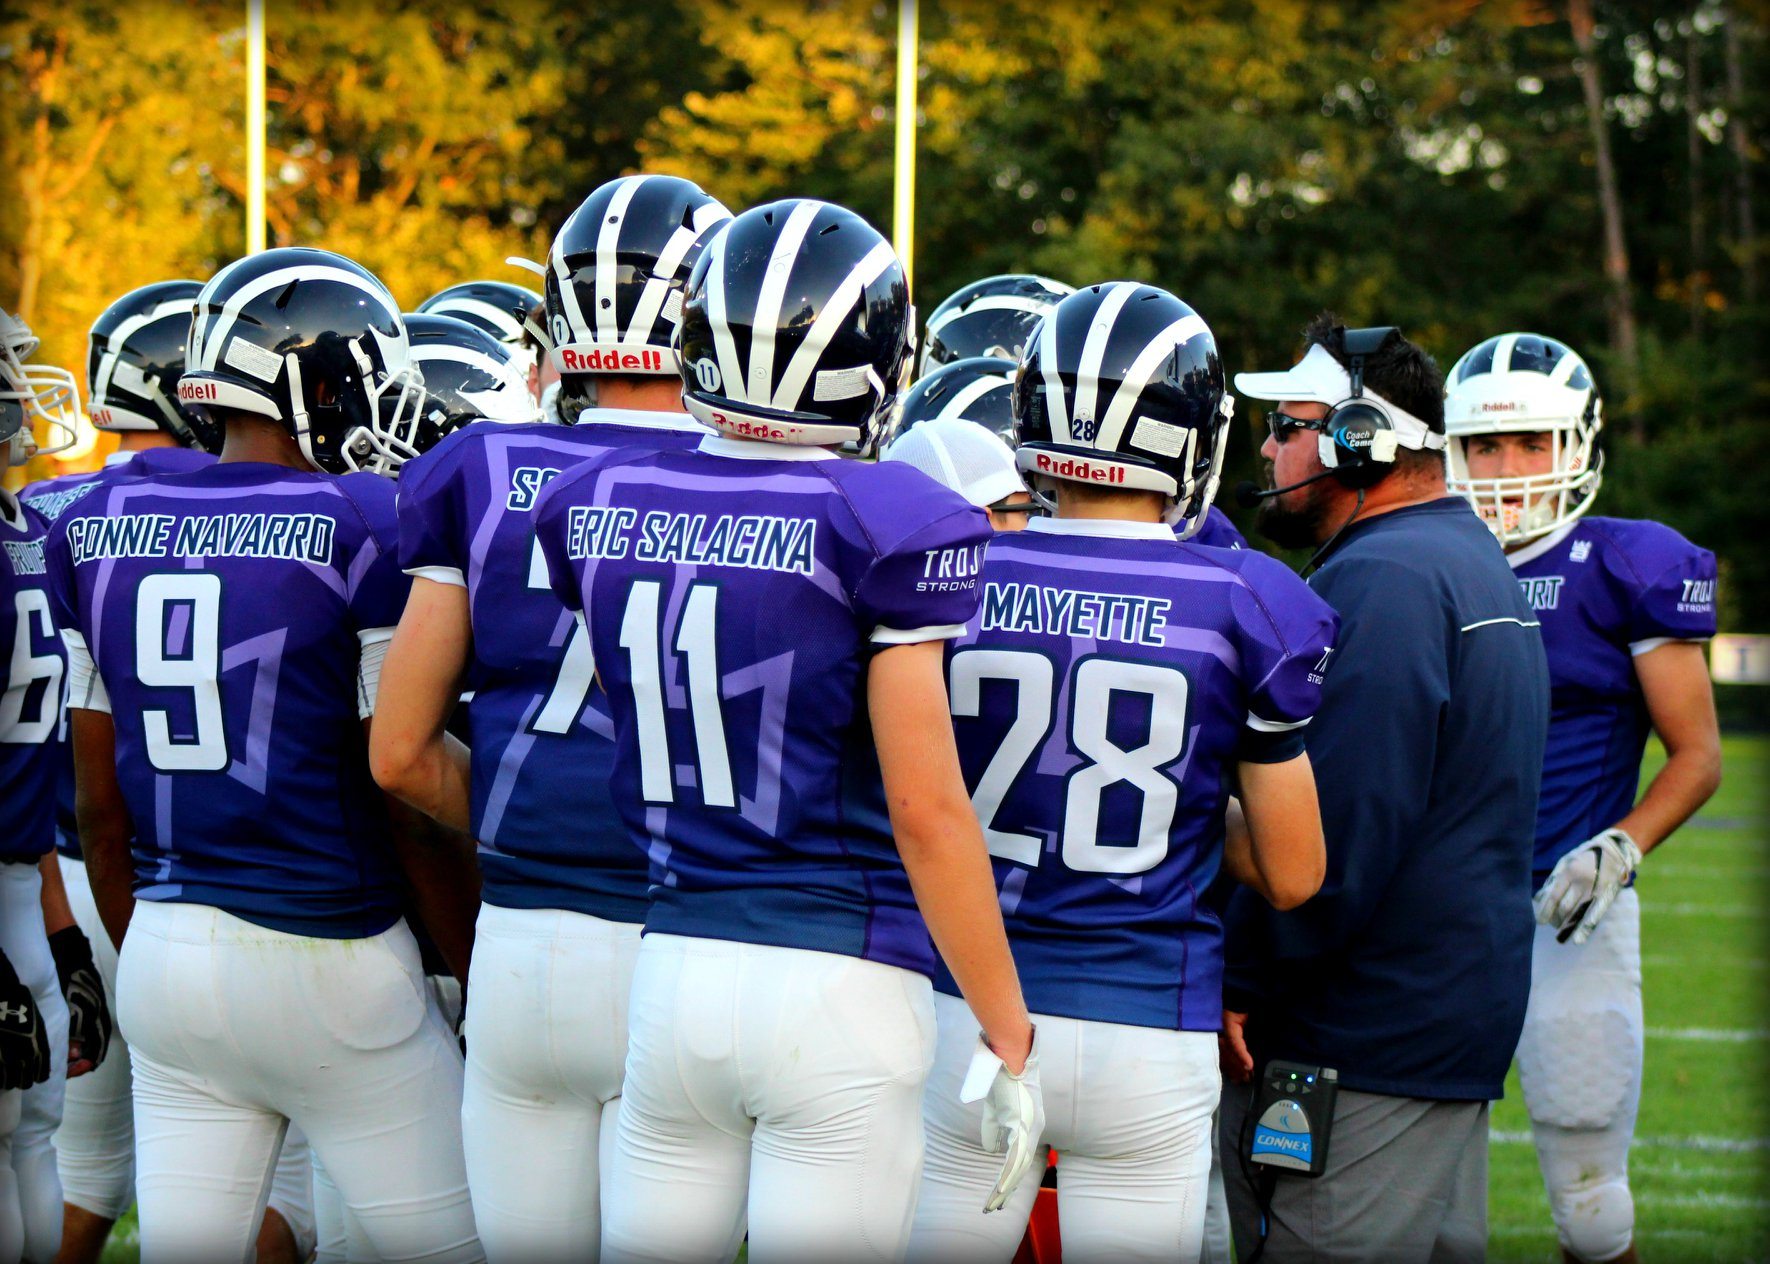 The Fruitport Trojans in the huddle during their Trojan Strong game against GR Union. The Trojans won 41-0.